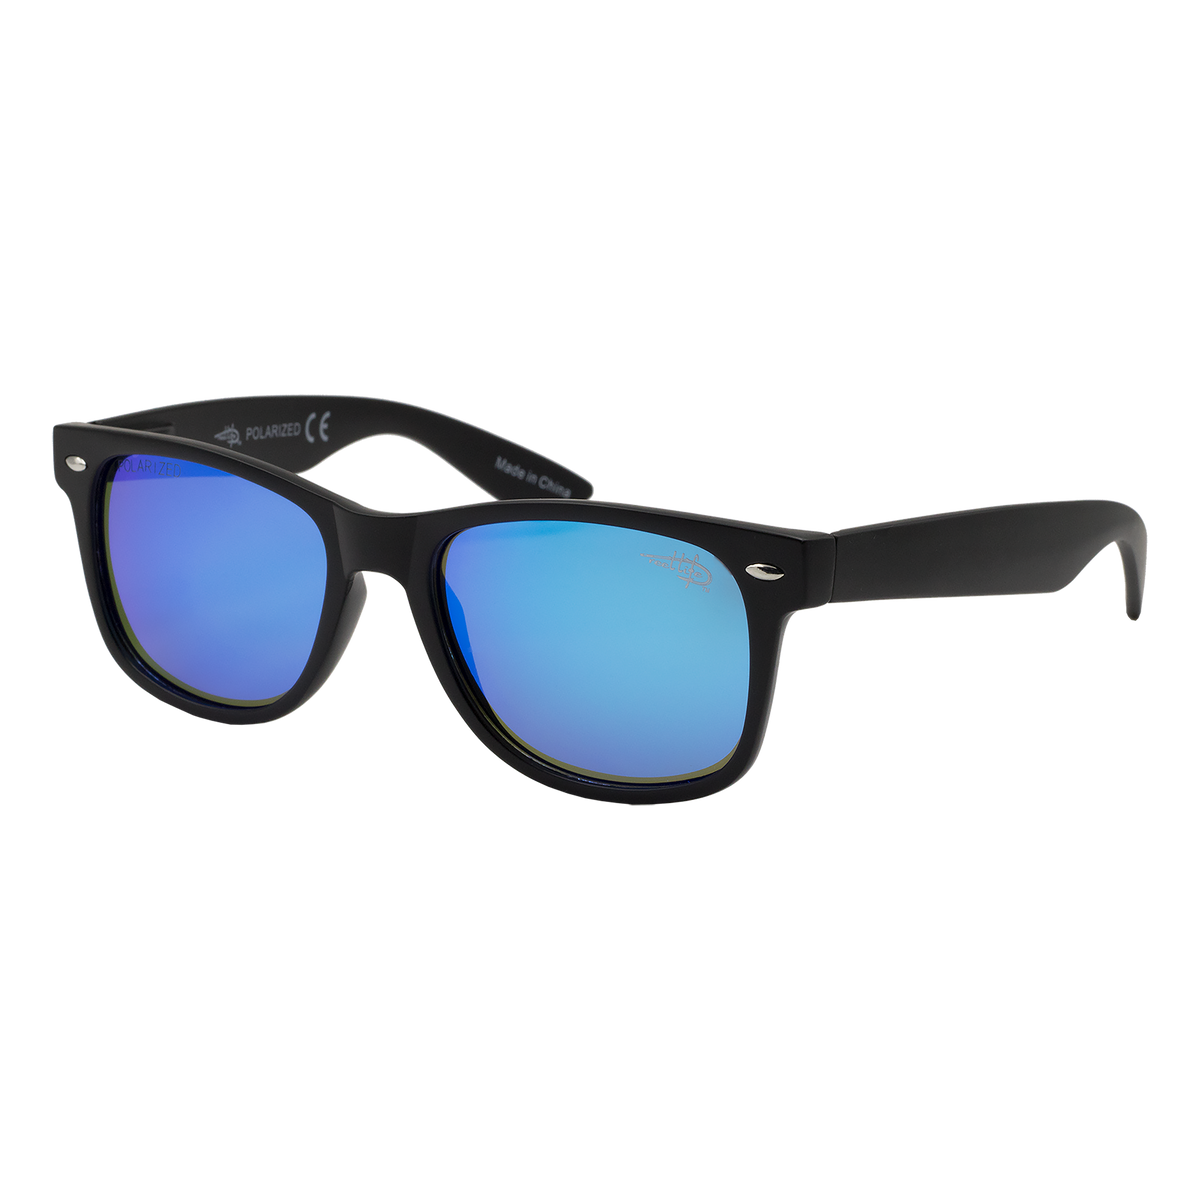 Destin 104P -  Polarized Blue Mirror Lens Sunglasses